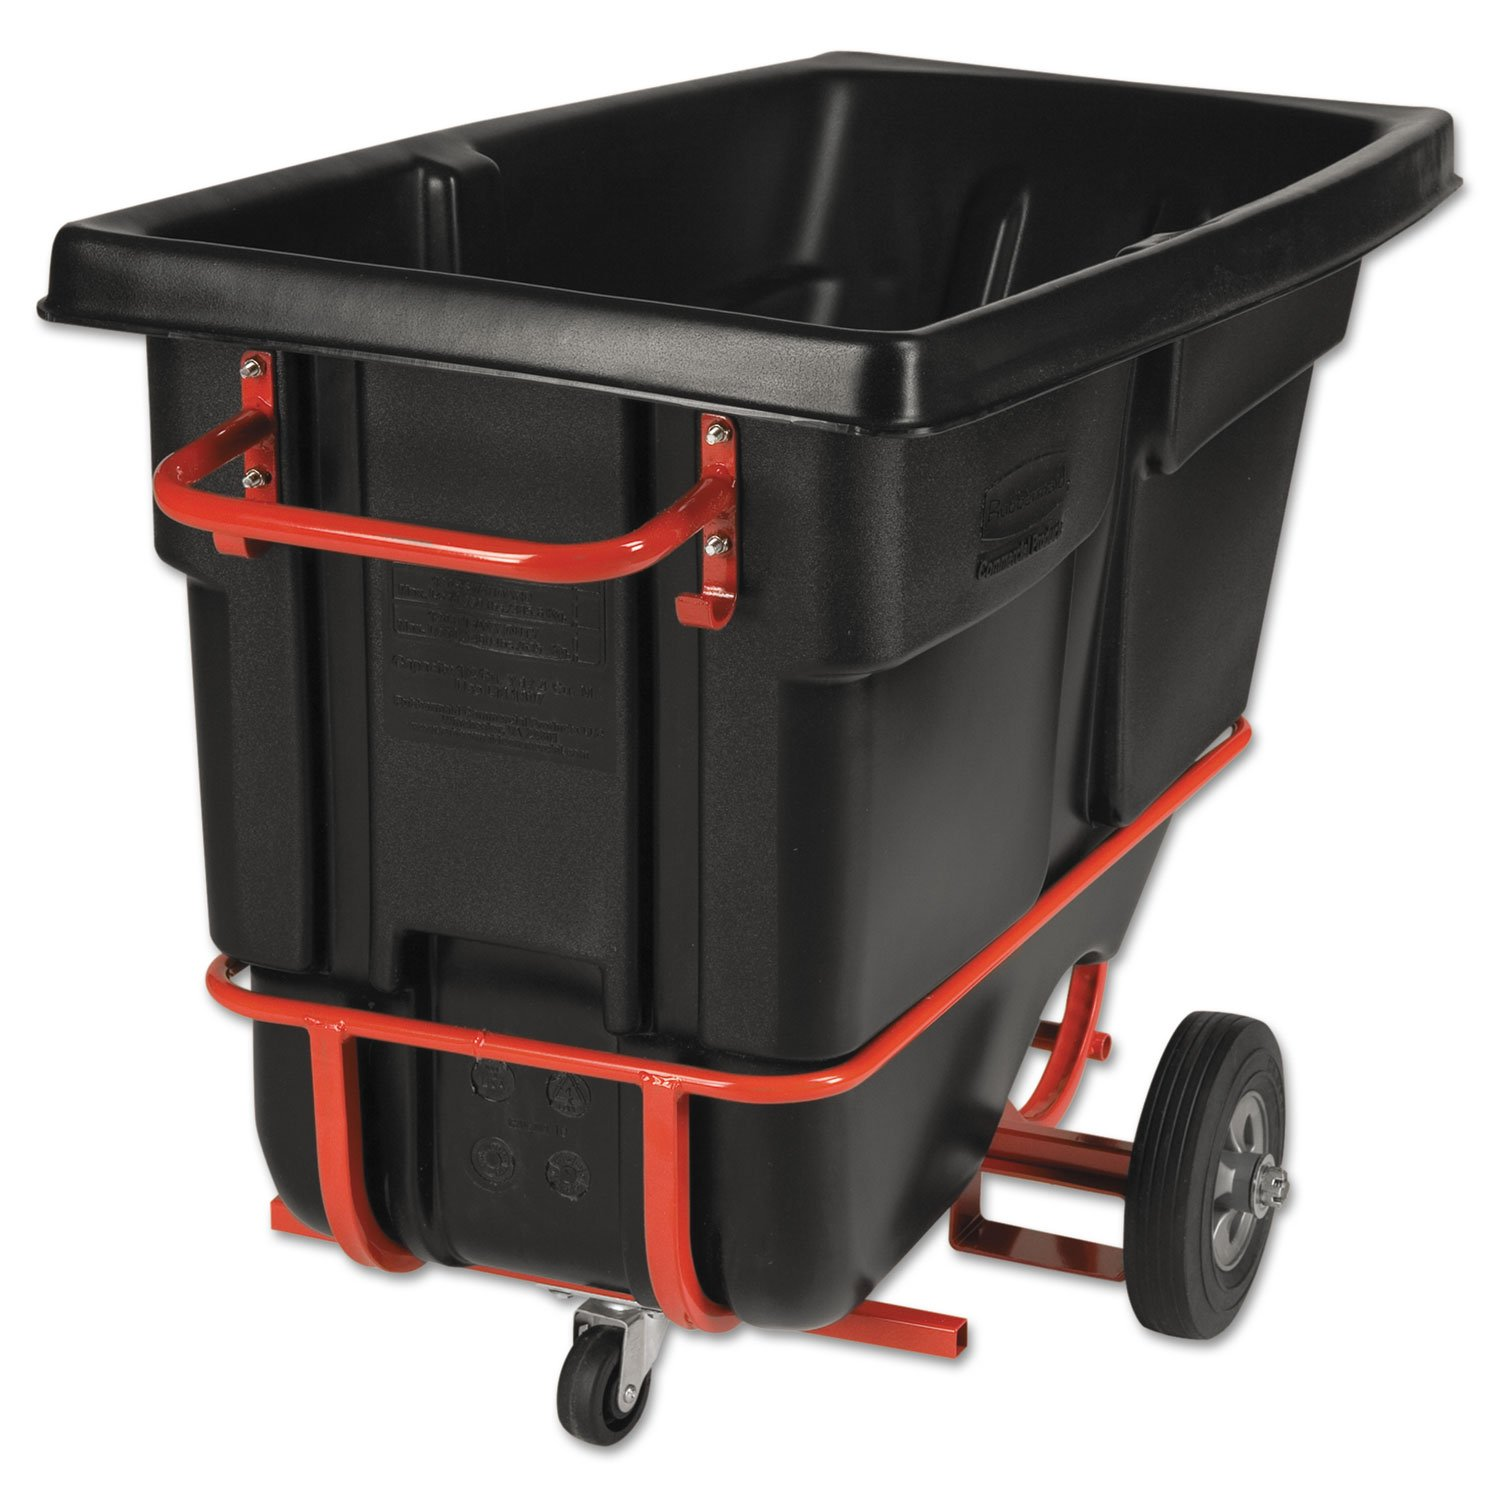 Rubbermaid Commercial Products Rcp 1305-42 1/2 Cubic Yard Fork Pock Et Tilt RCP 1305-42